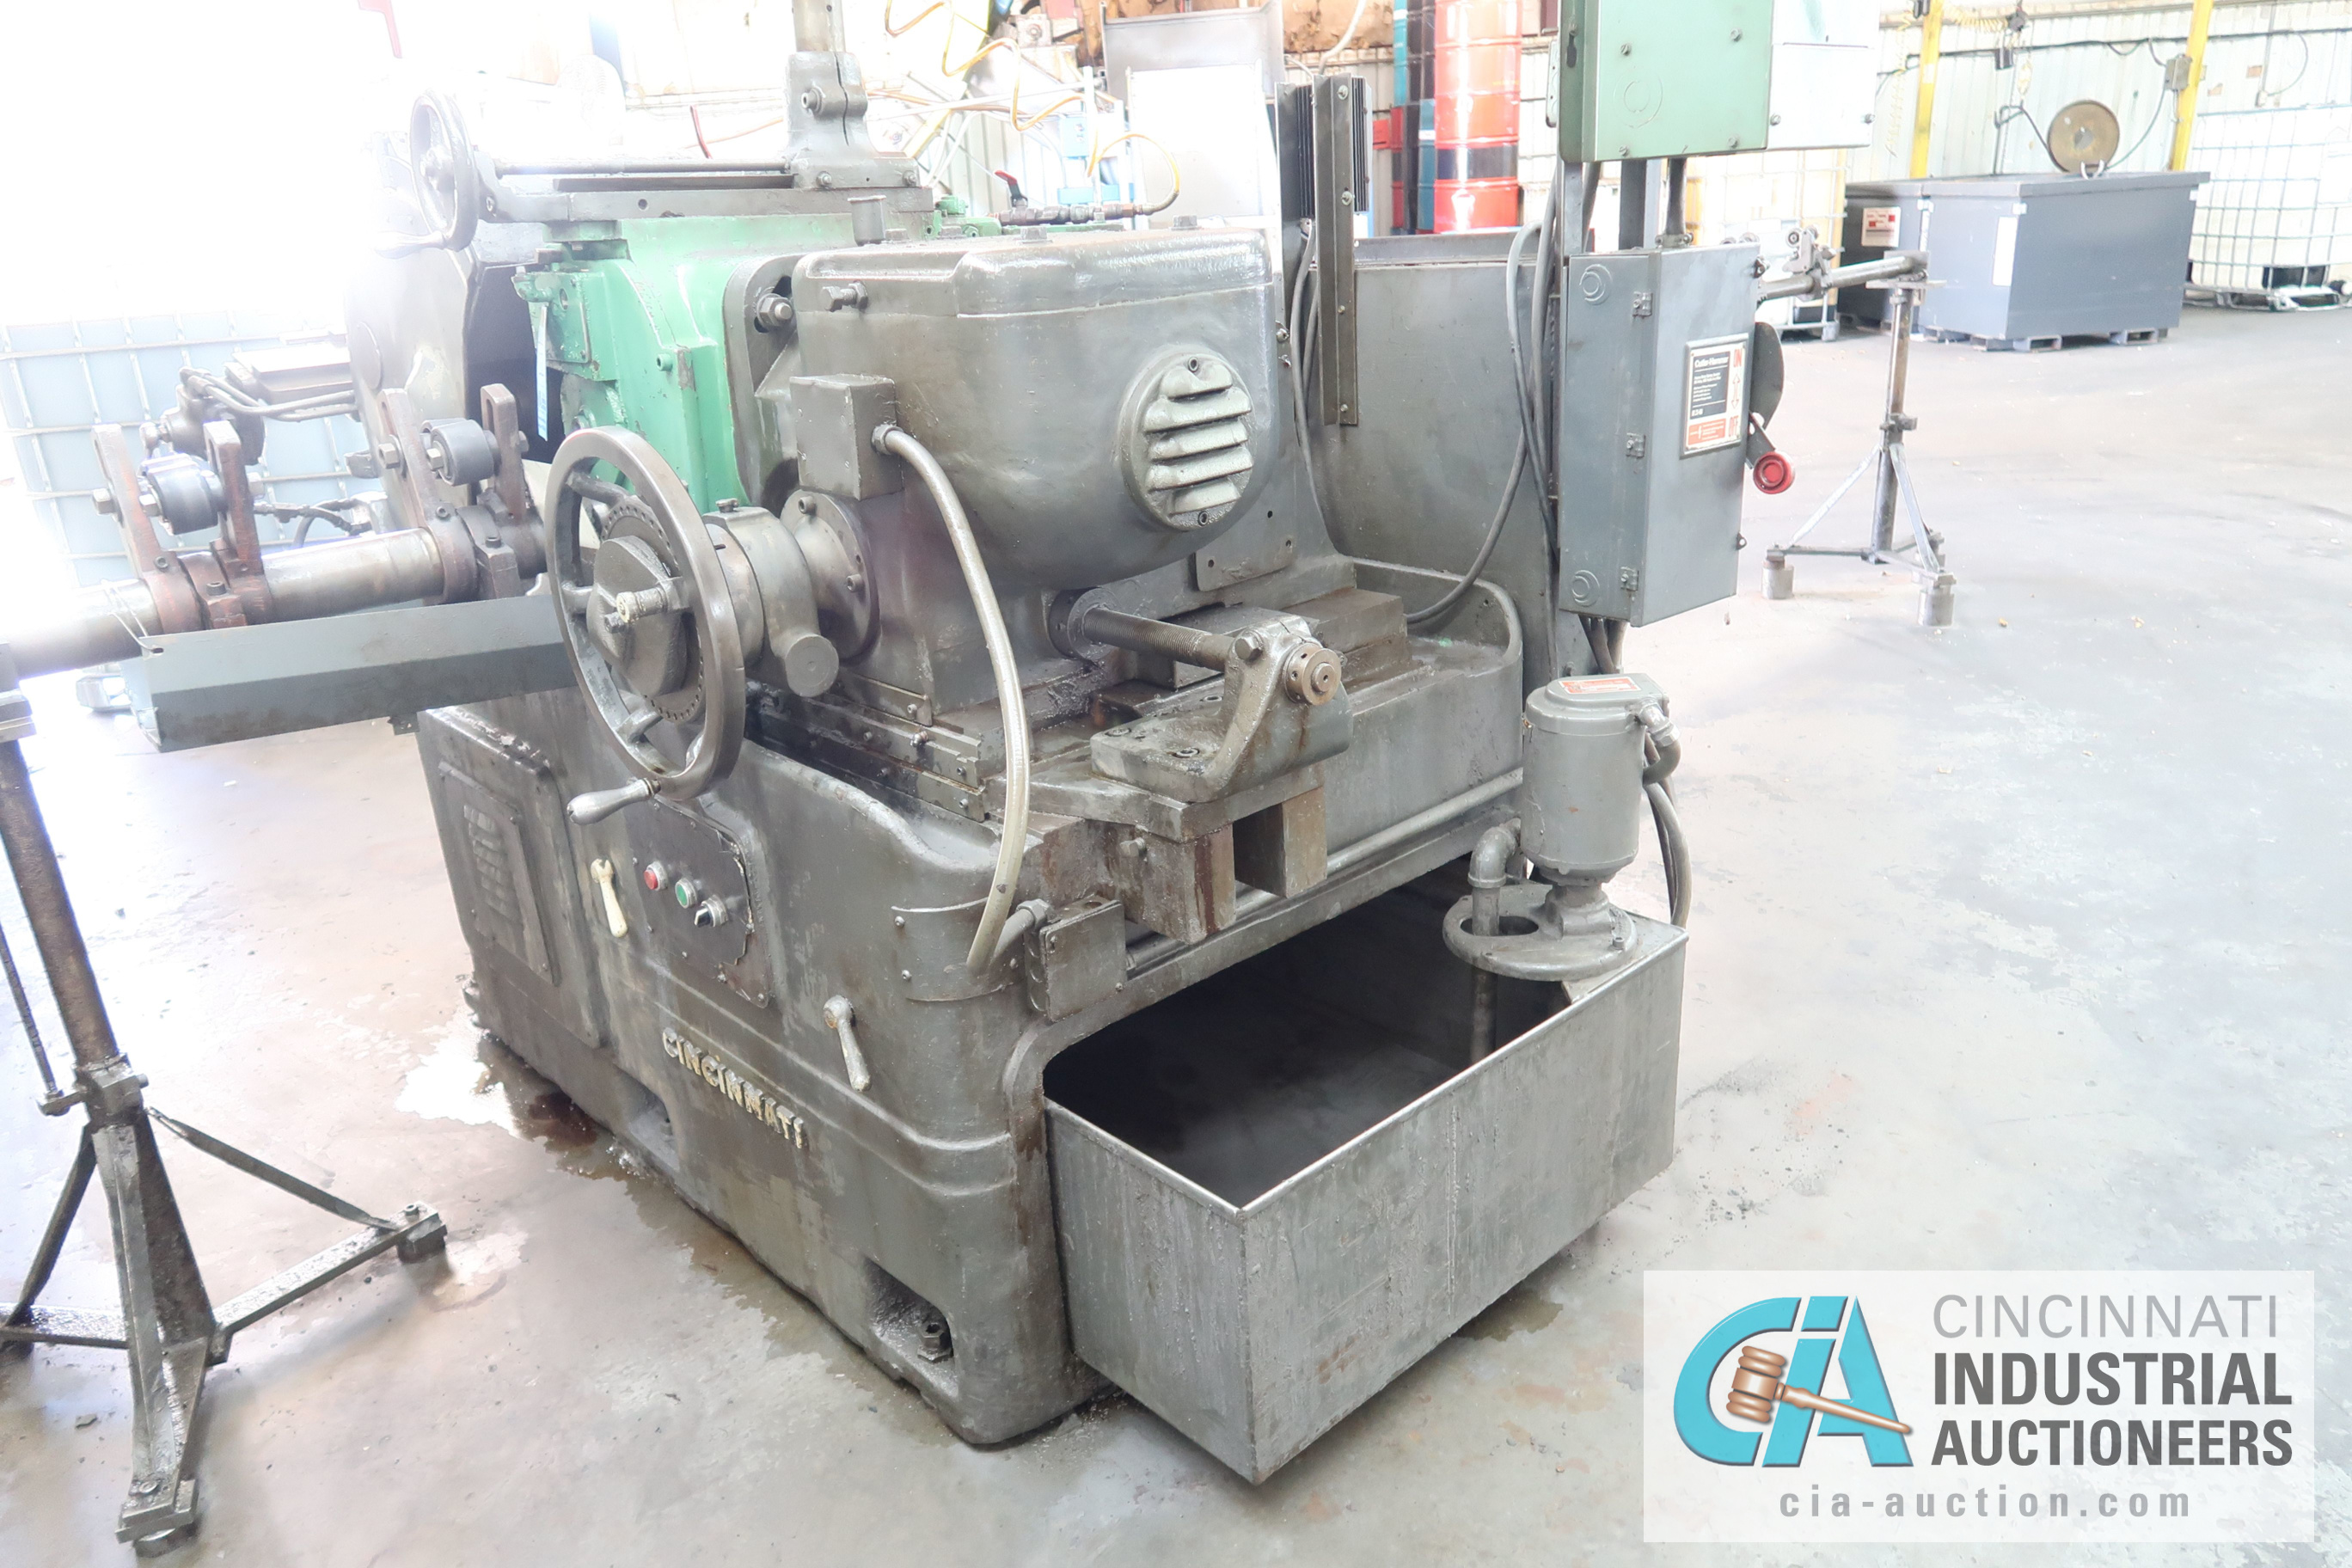 CINCINNATI MODEL 3 CENTERLESS GRINDER; S/N 3M3H5A-37 WITH INFEED AND OUTFEED CONVEYORS - Image 5 of 5